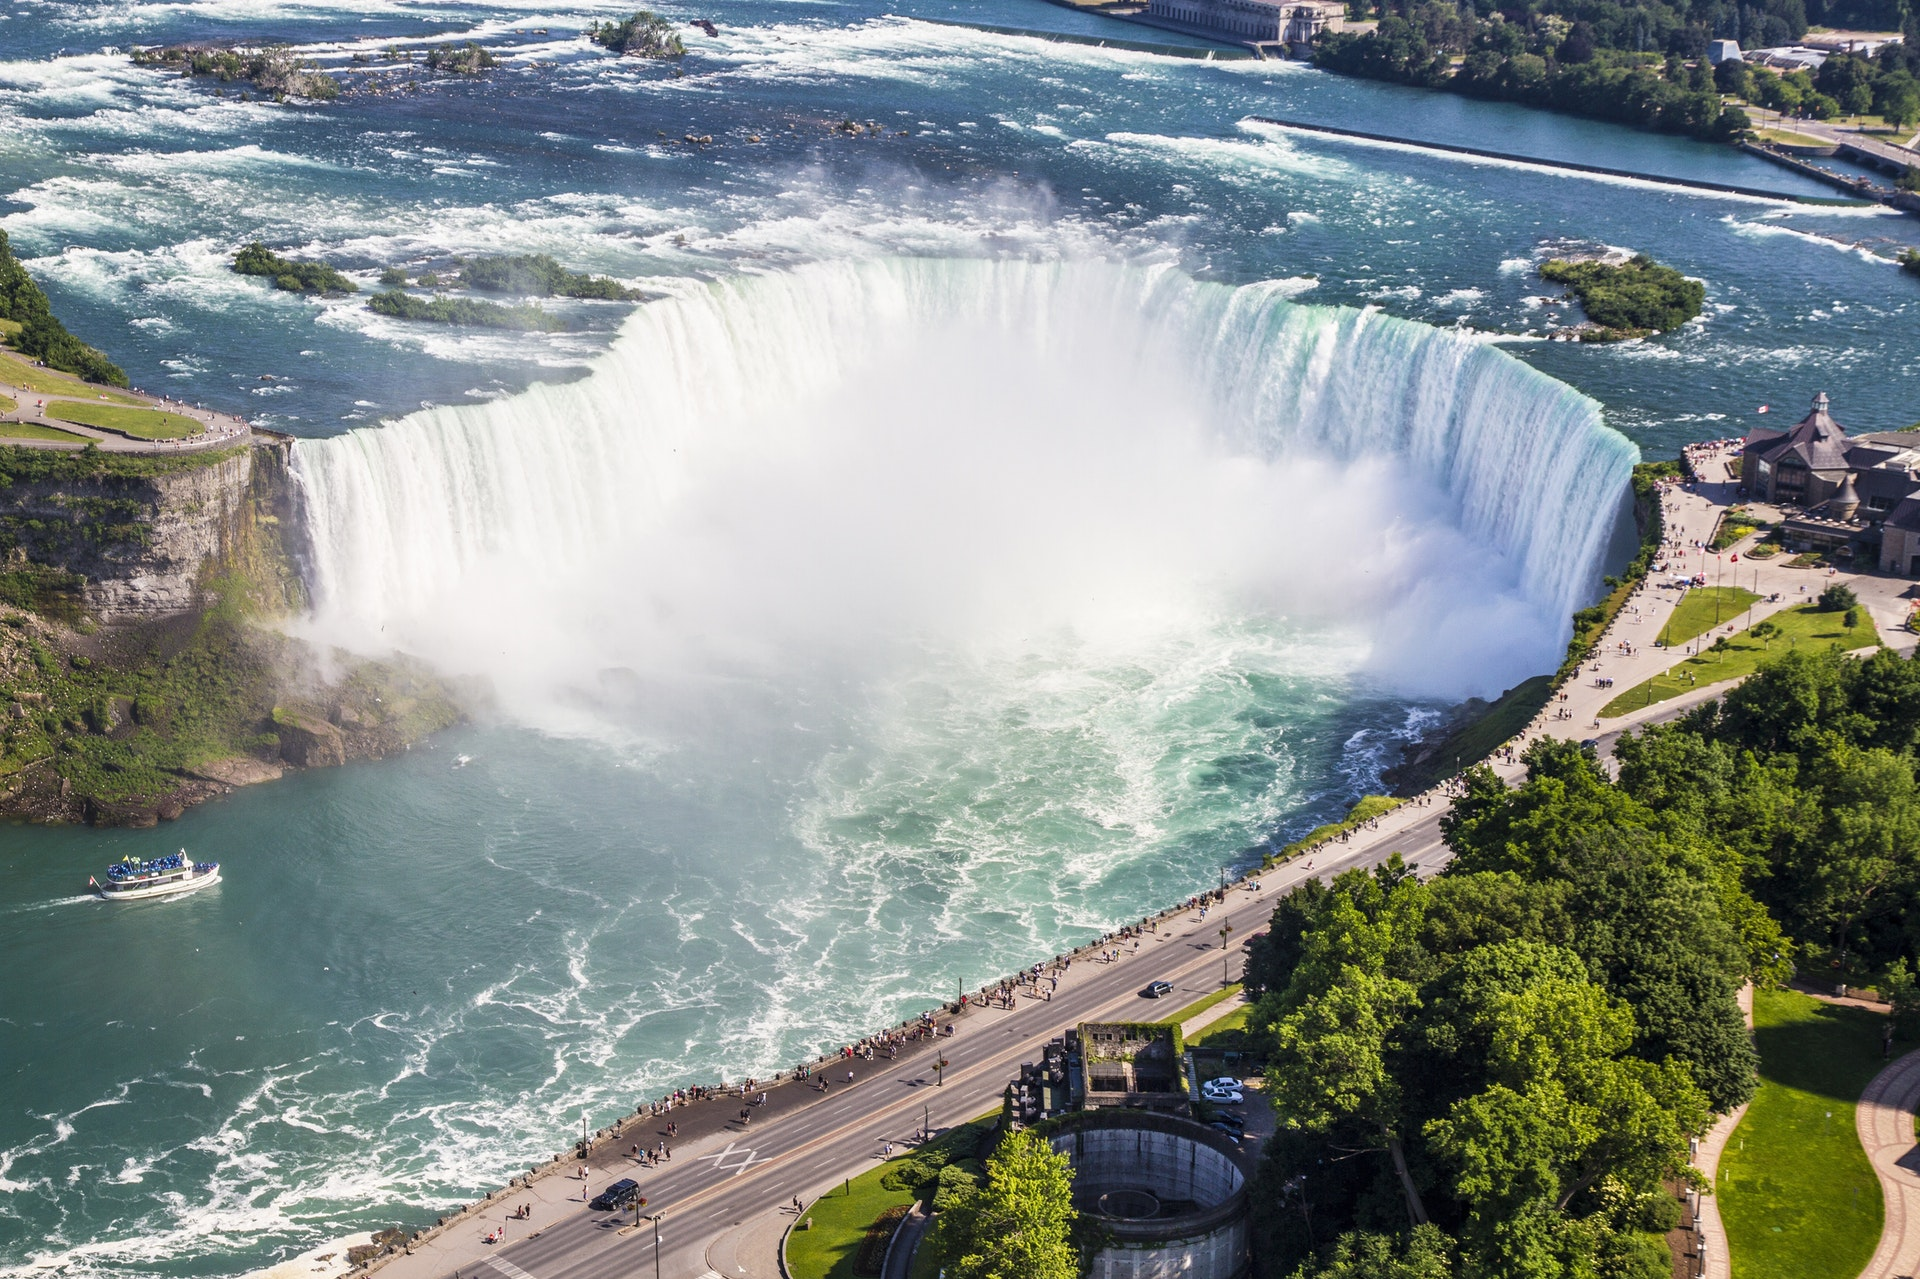 Niagara Falls - 4 Things to Enjoy in Your Niagara Falls Adventure